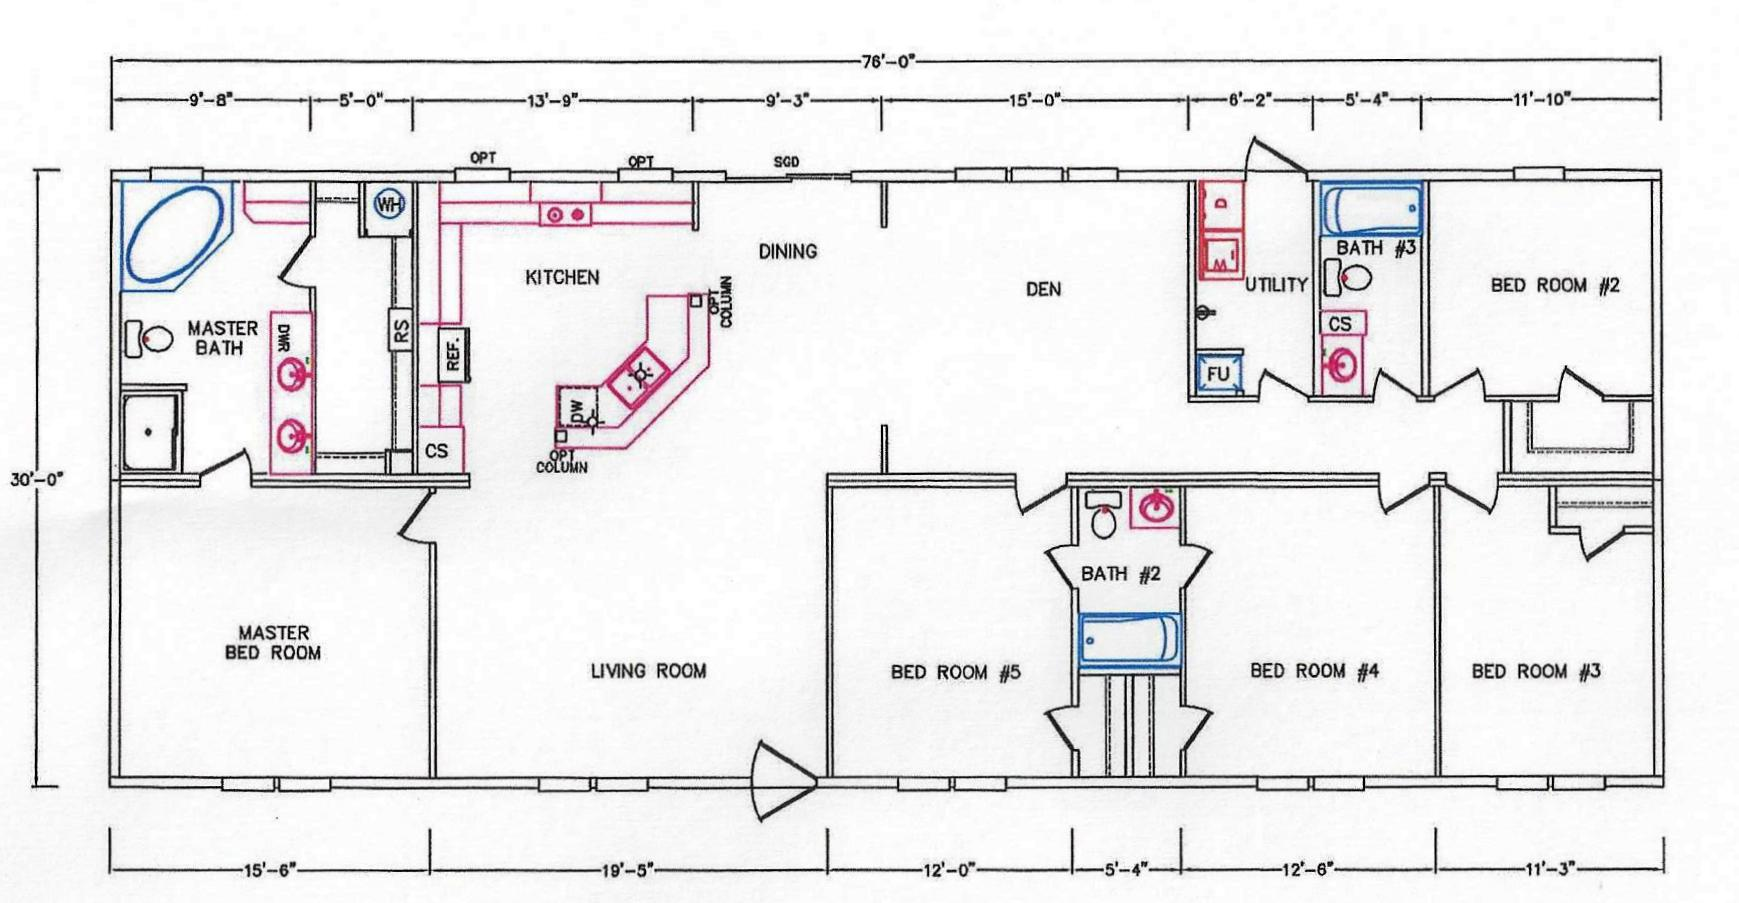 5 Bedroom Floor Plan: K-32 - Hawks Homes | Manufactured & Modular ...